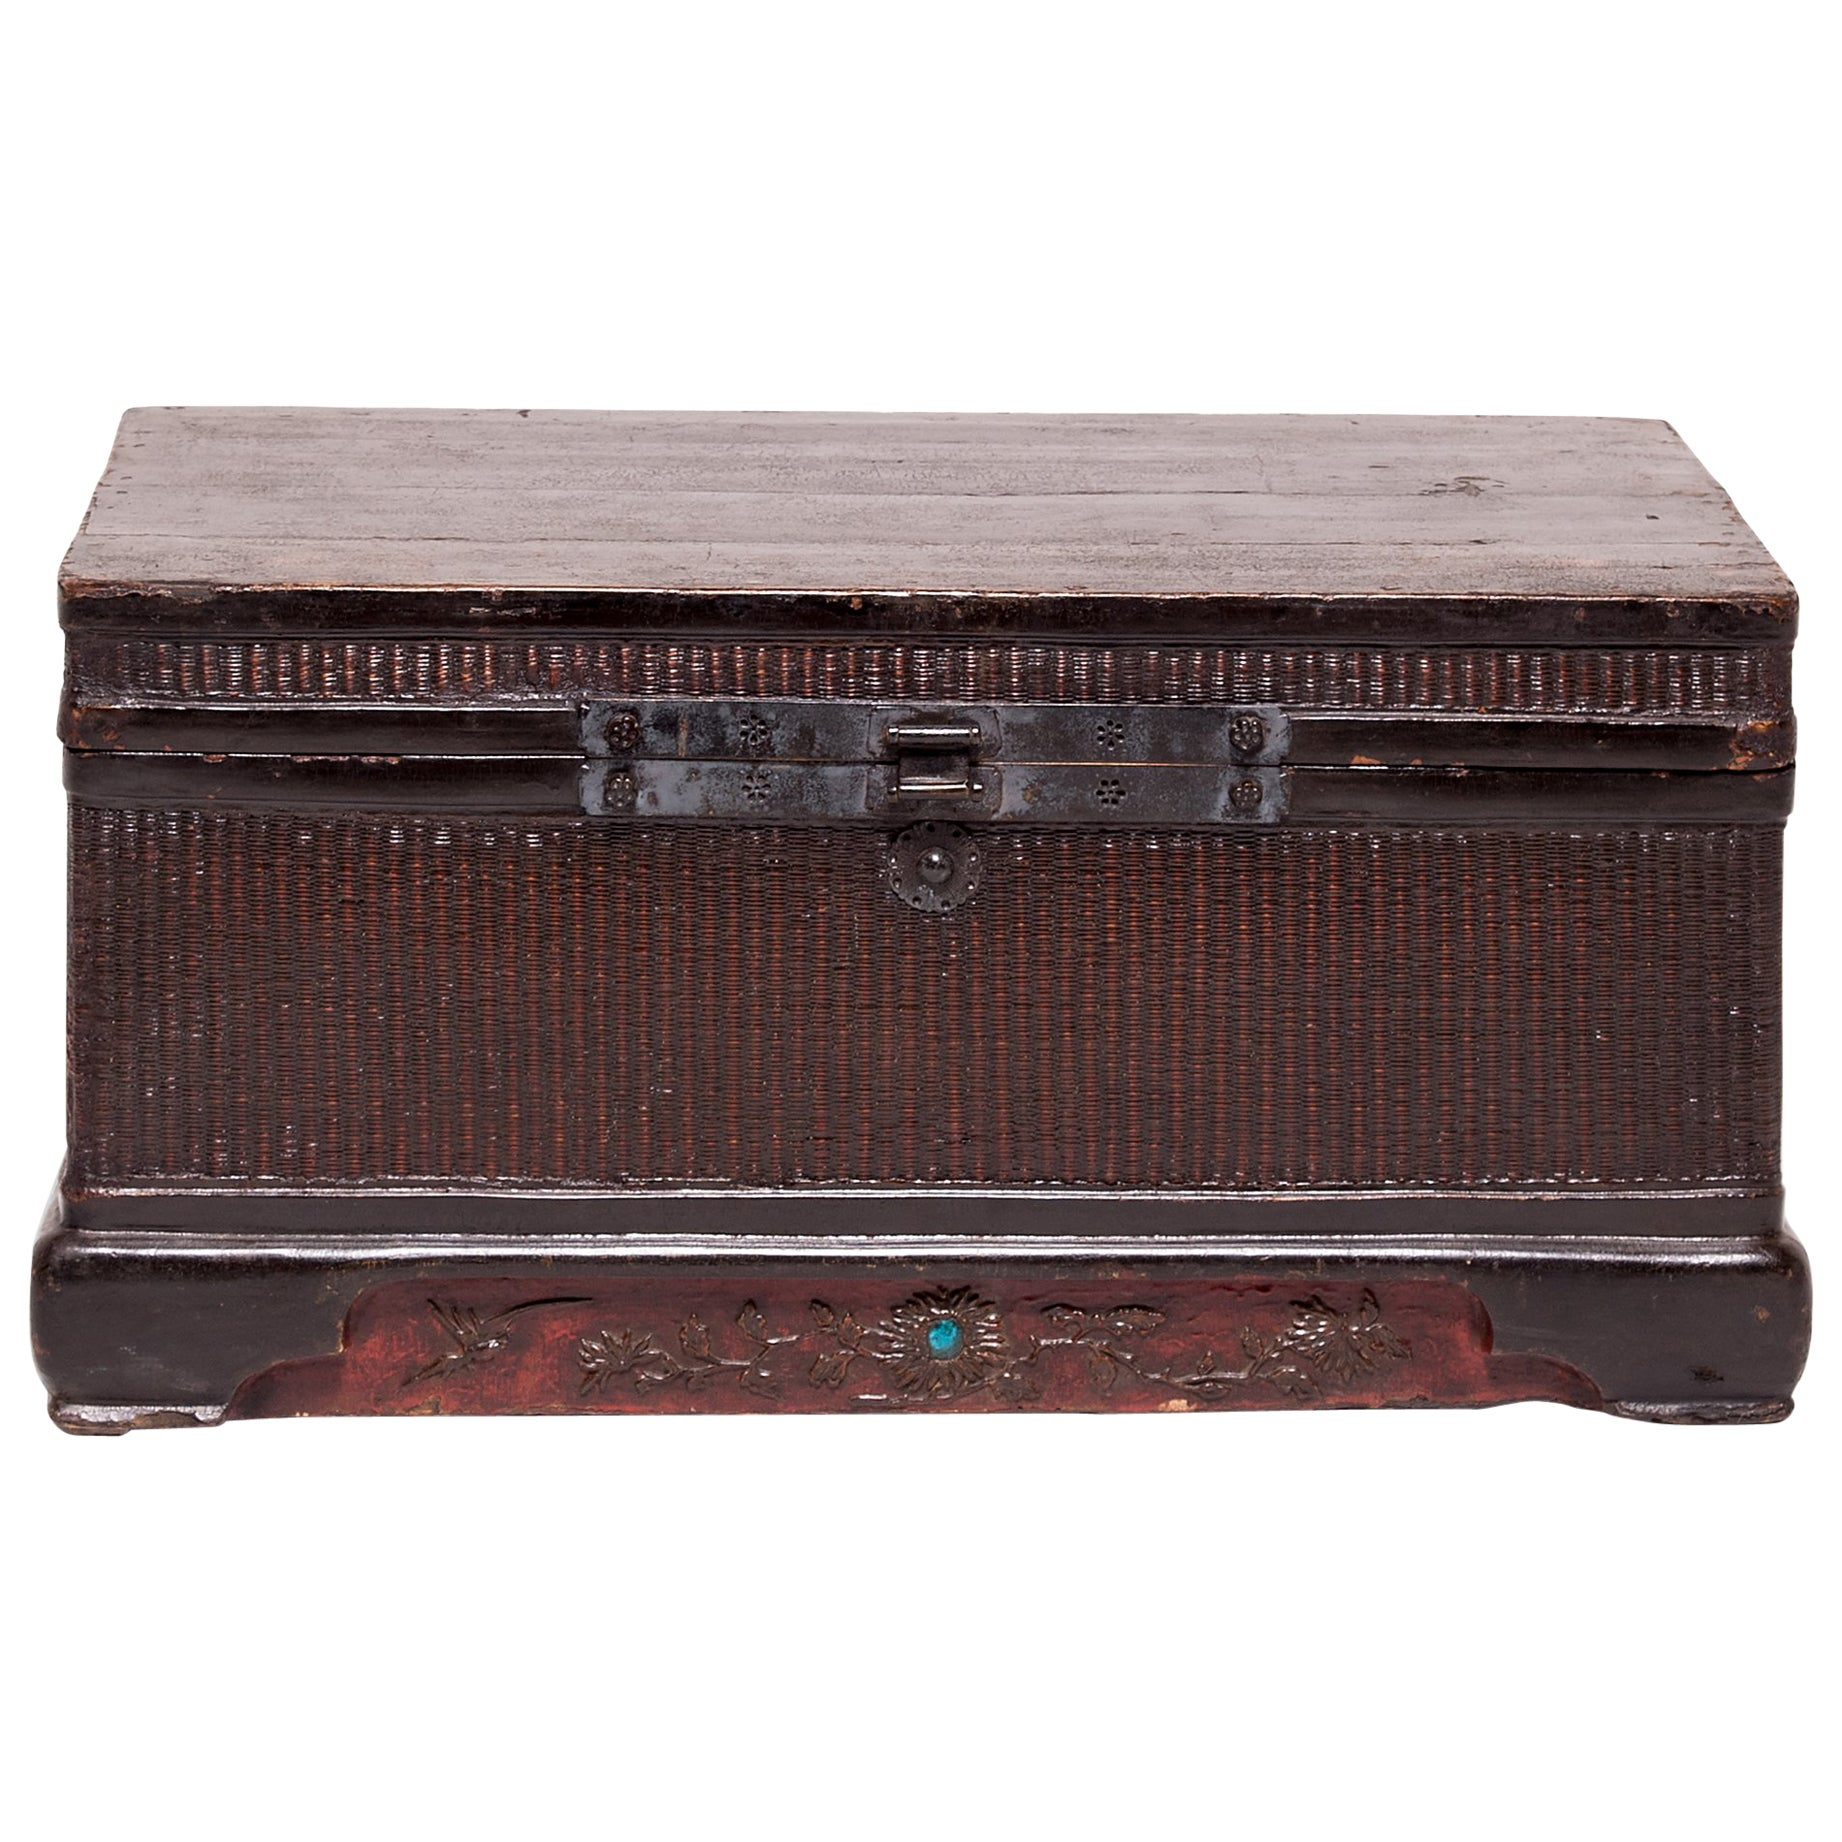 19th Century Chinese Woven Reed Trunk